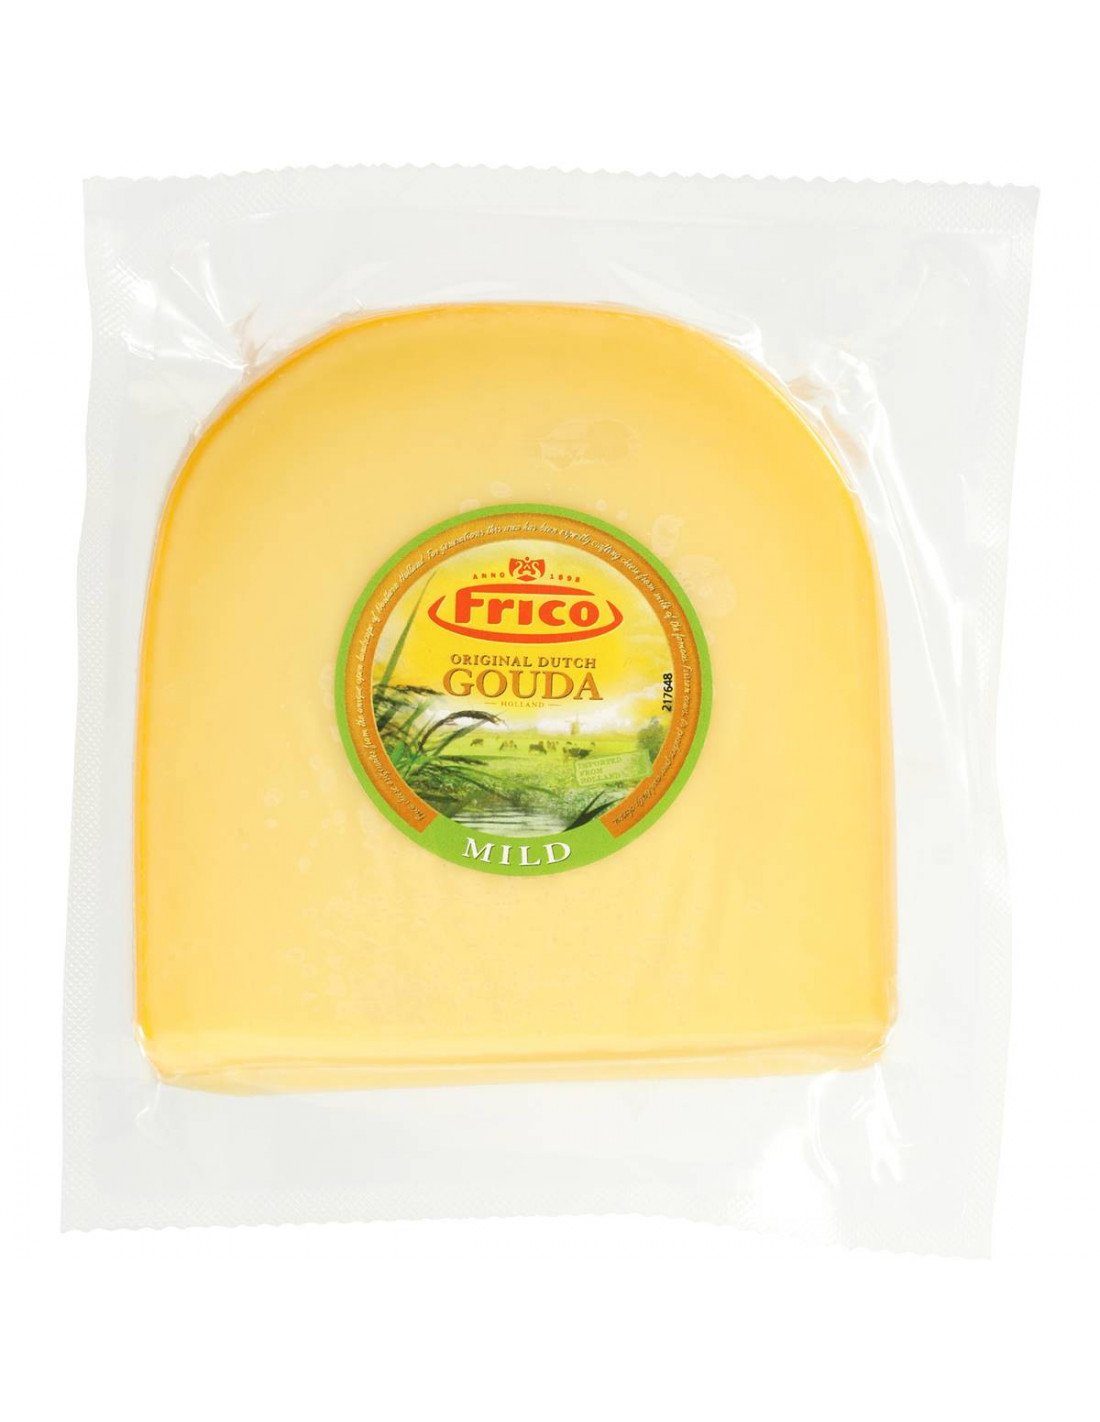 stm>Frico Gouda Cheese 11.28oz, 320g